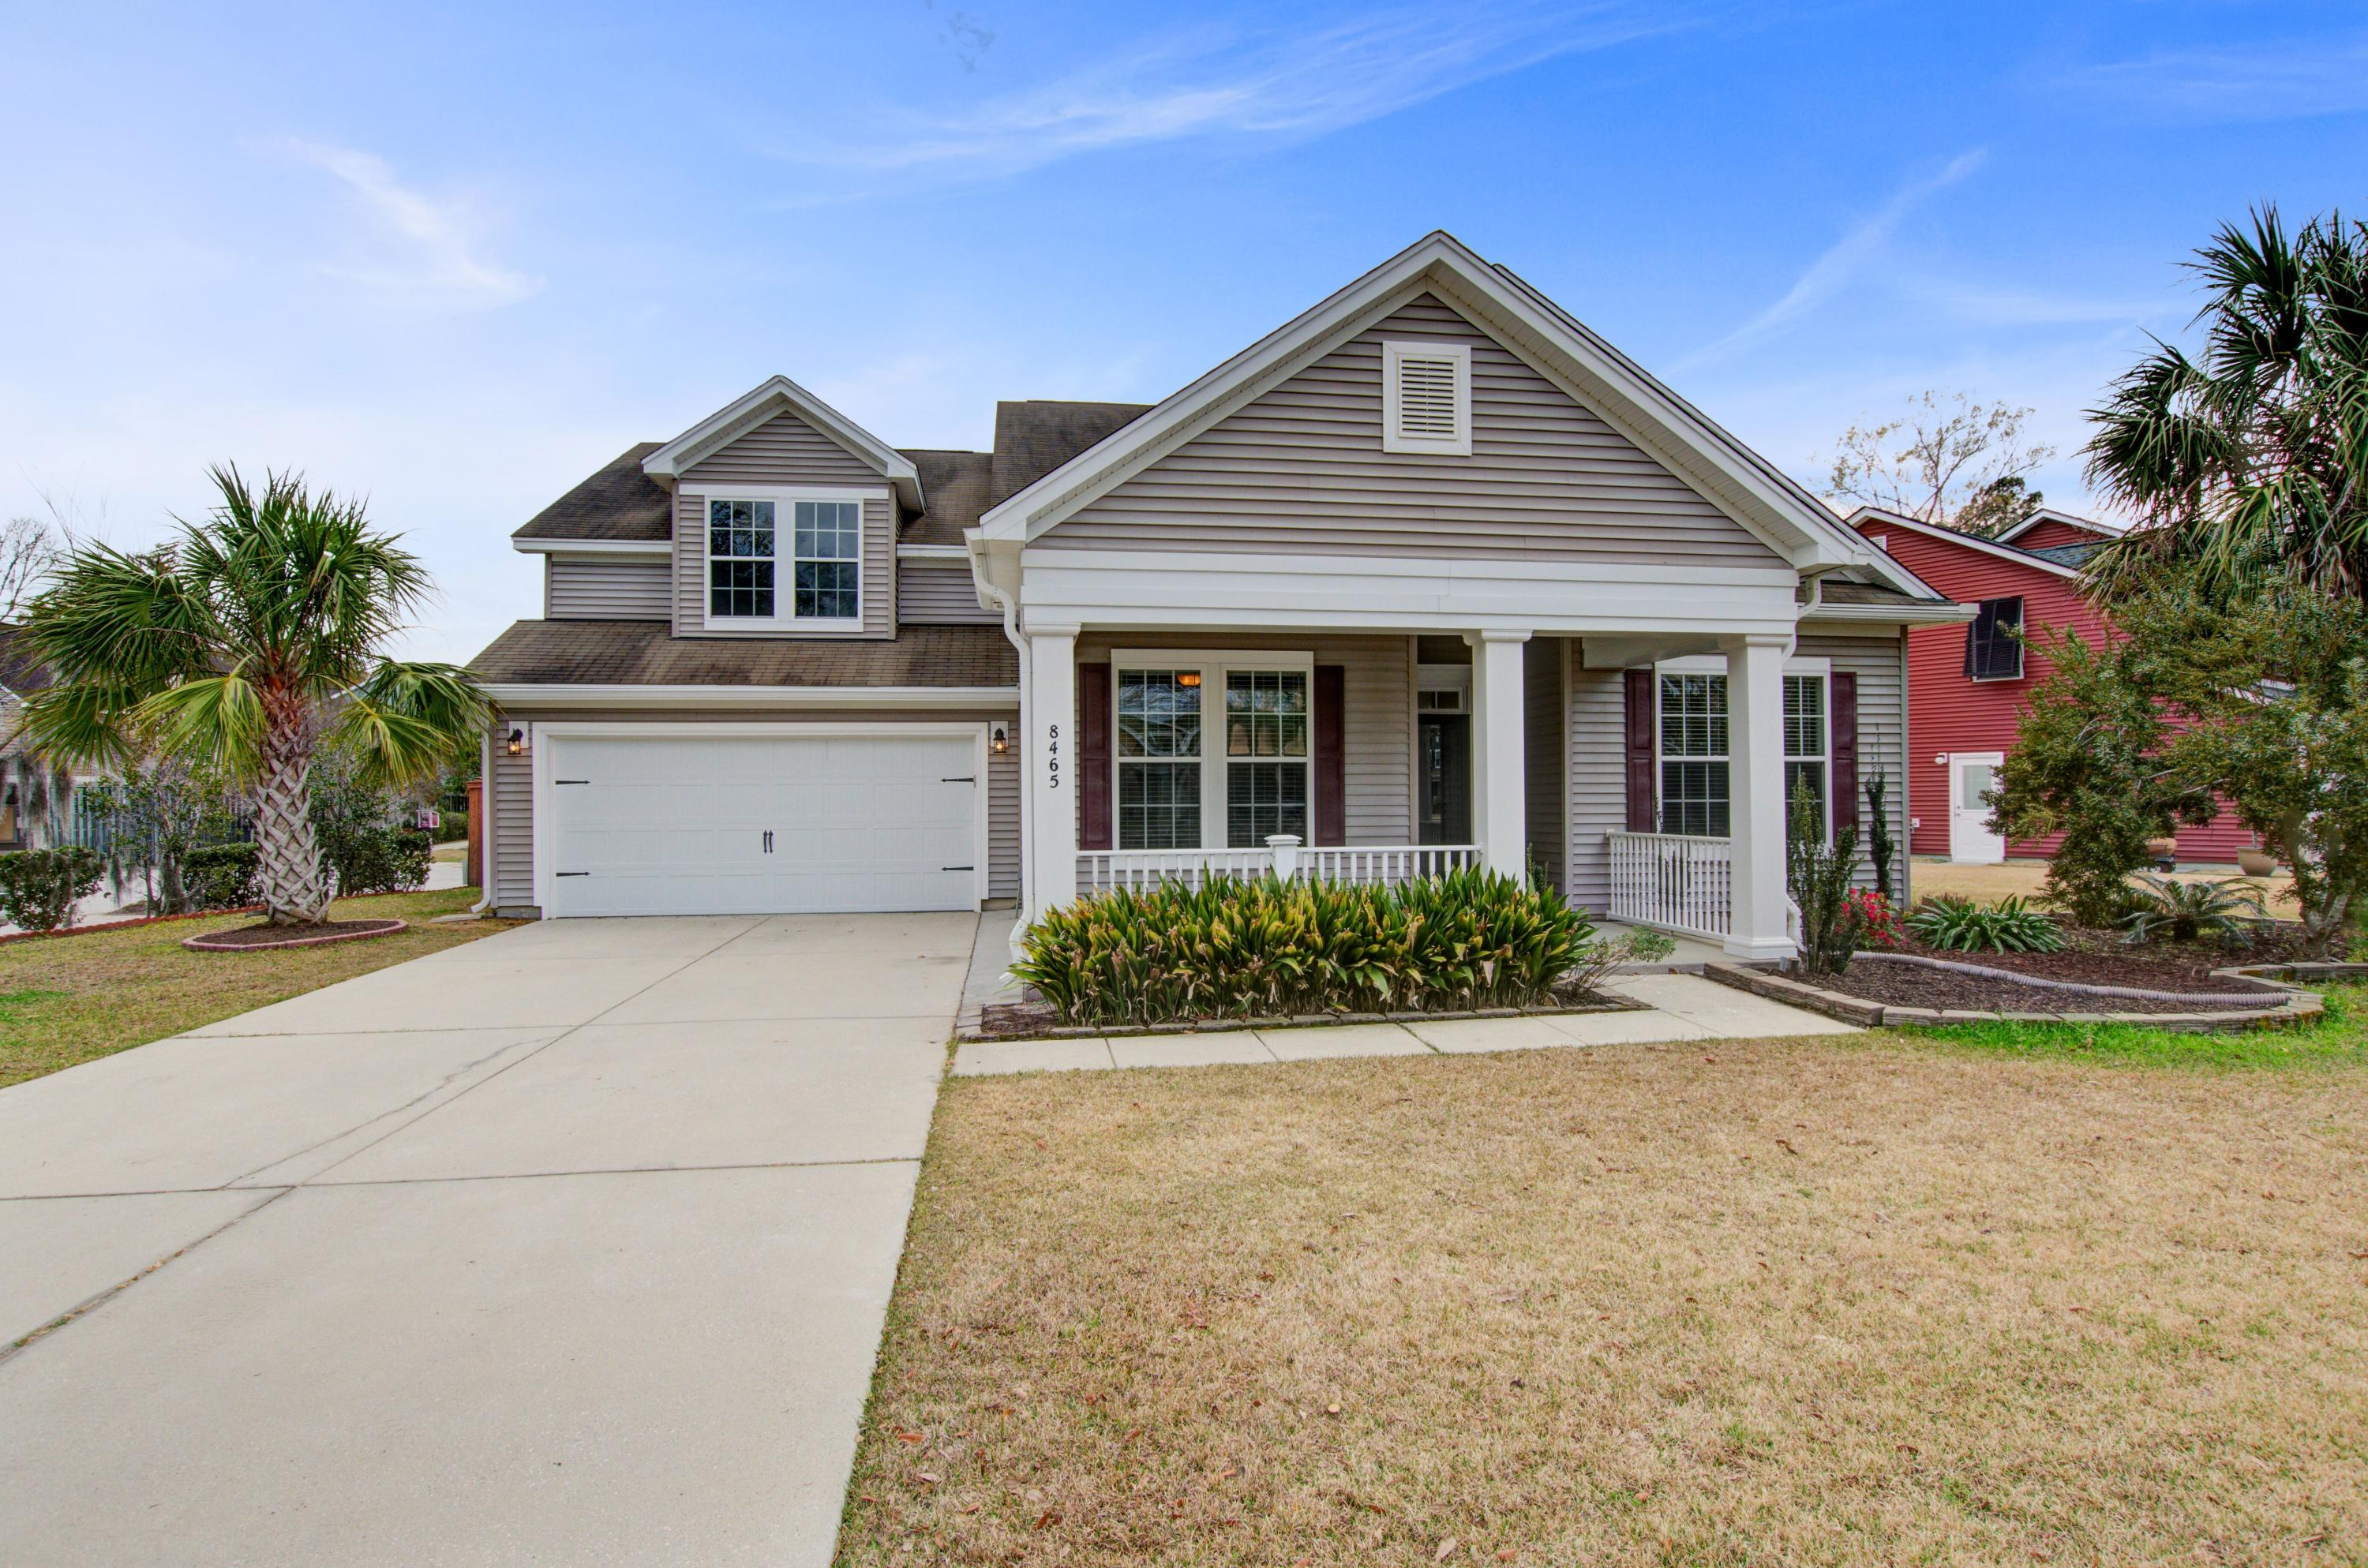 8465 Middle River Way North Charleston, Sc 29420